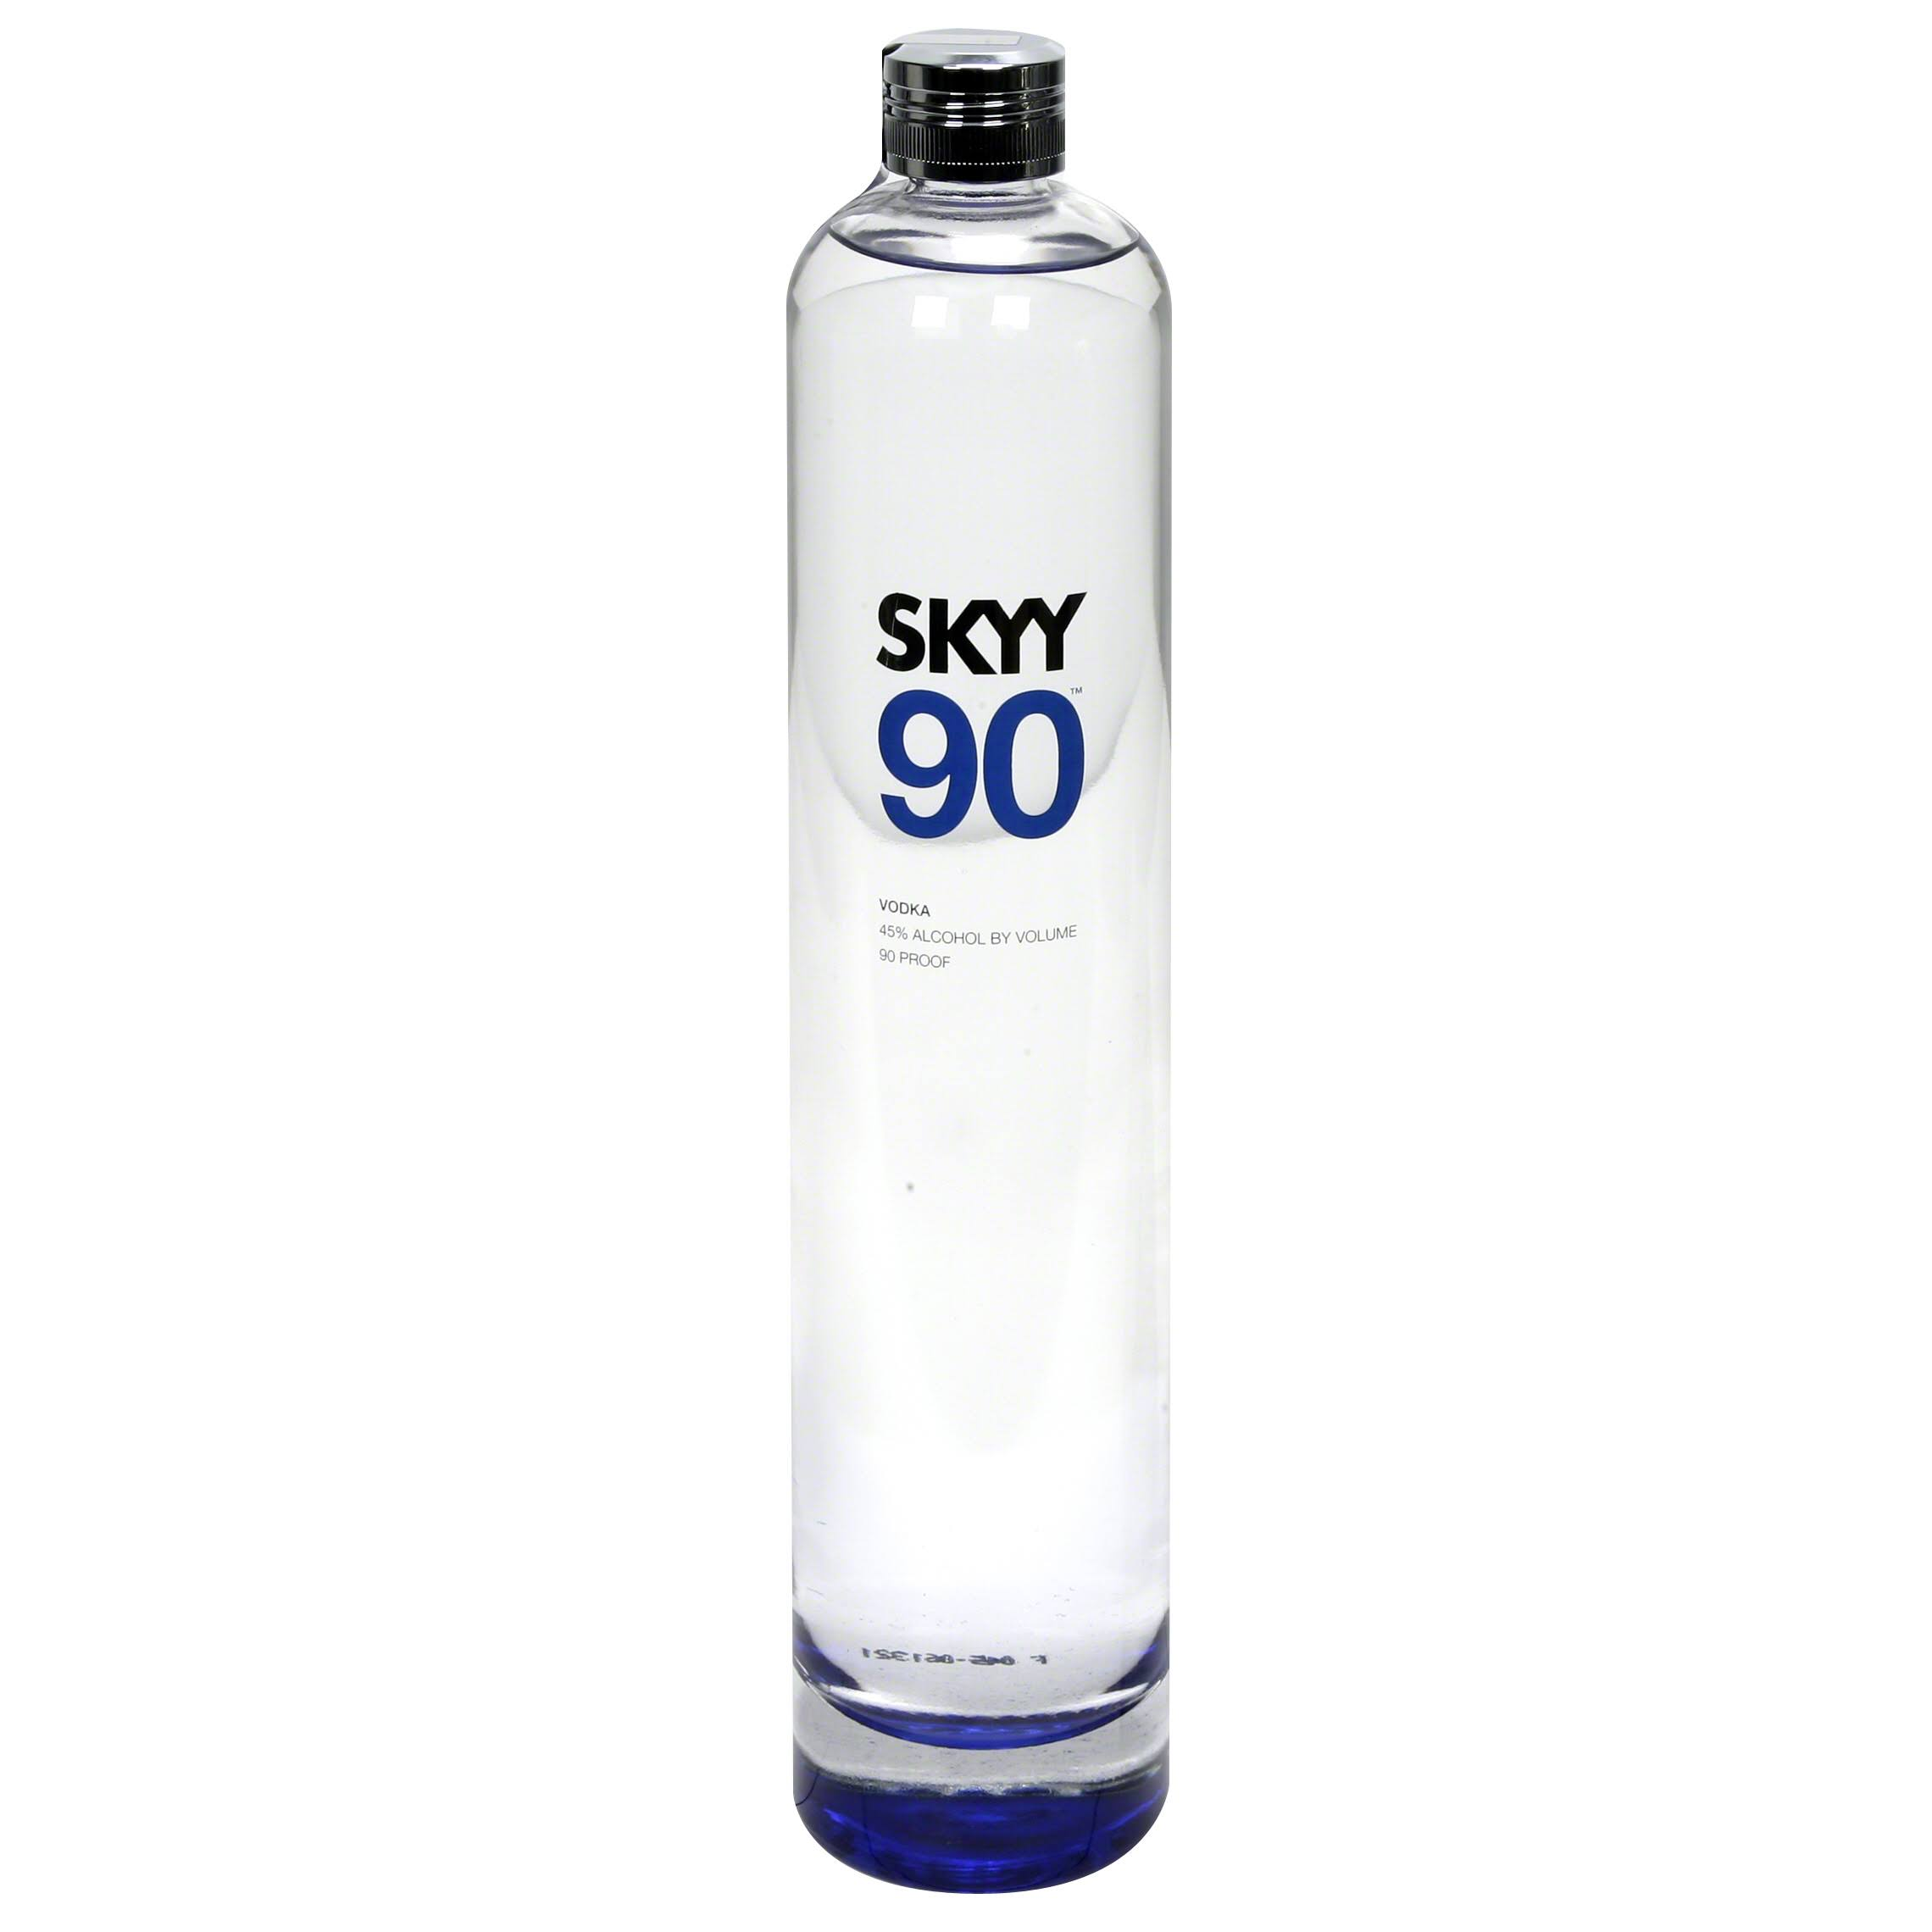 Skyy 90 Vodka - 750 ml